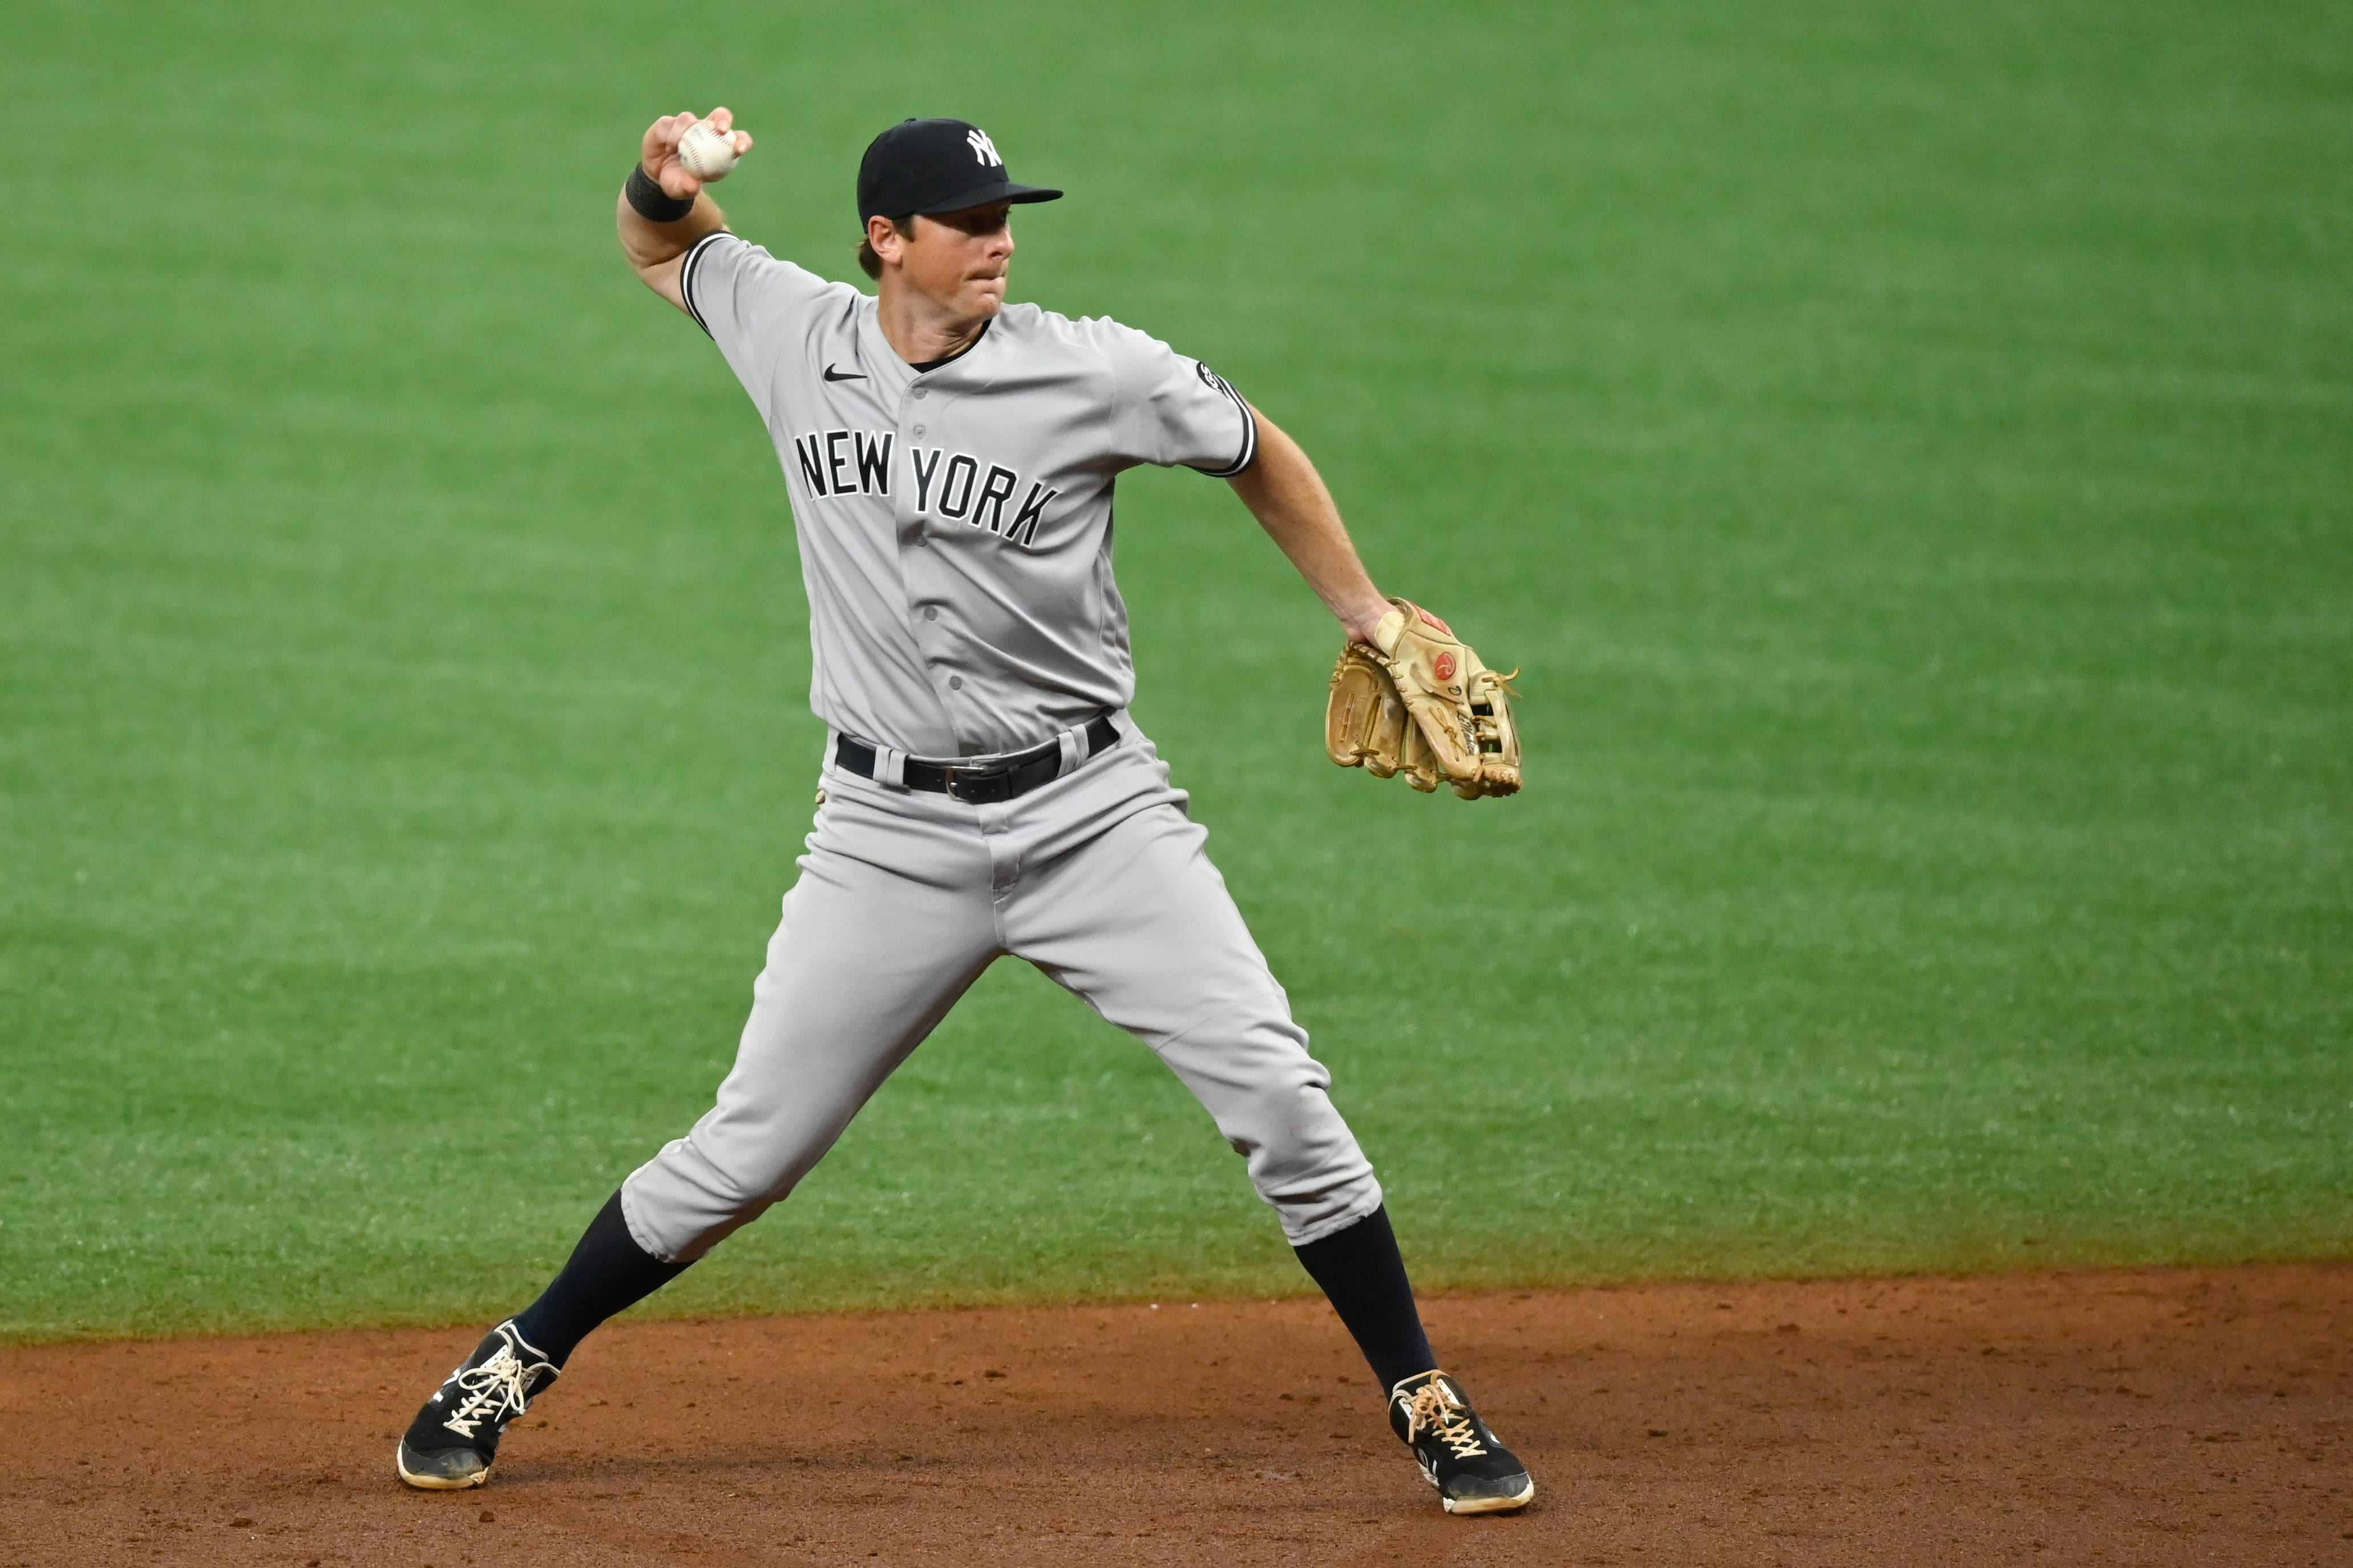 New York Yankees, DJ LeMahieu